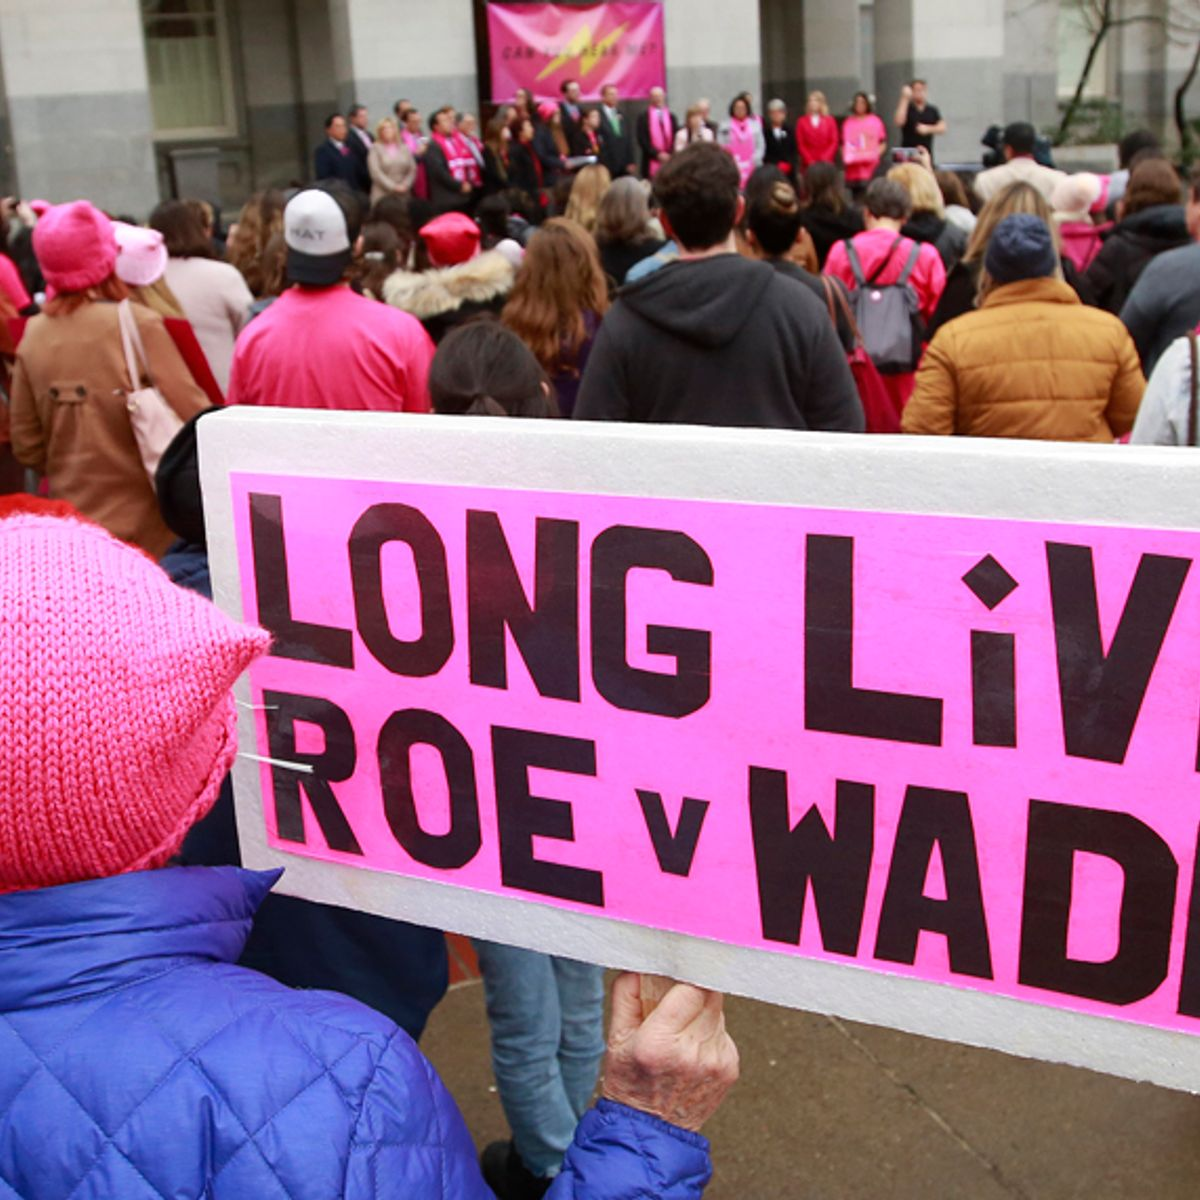 When religious ideology drives abortion policy, poor women suffer the consequences